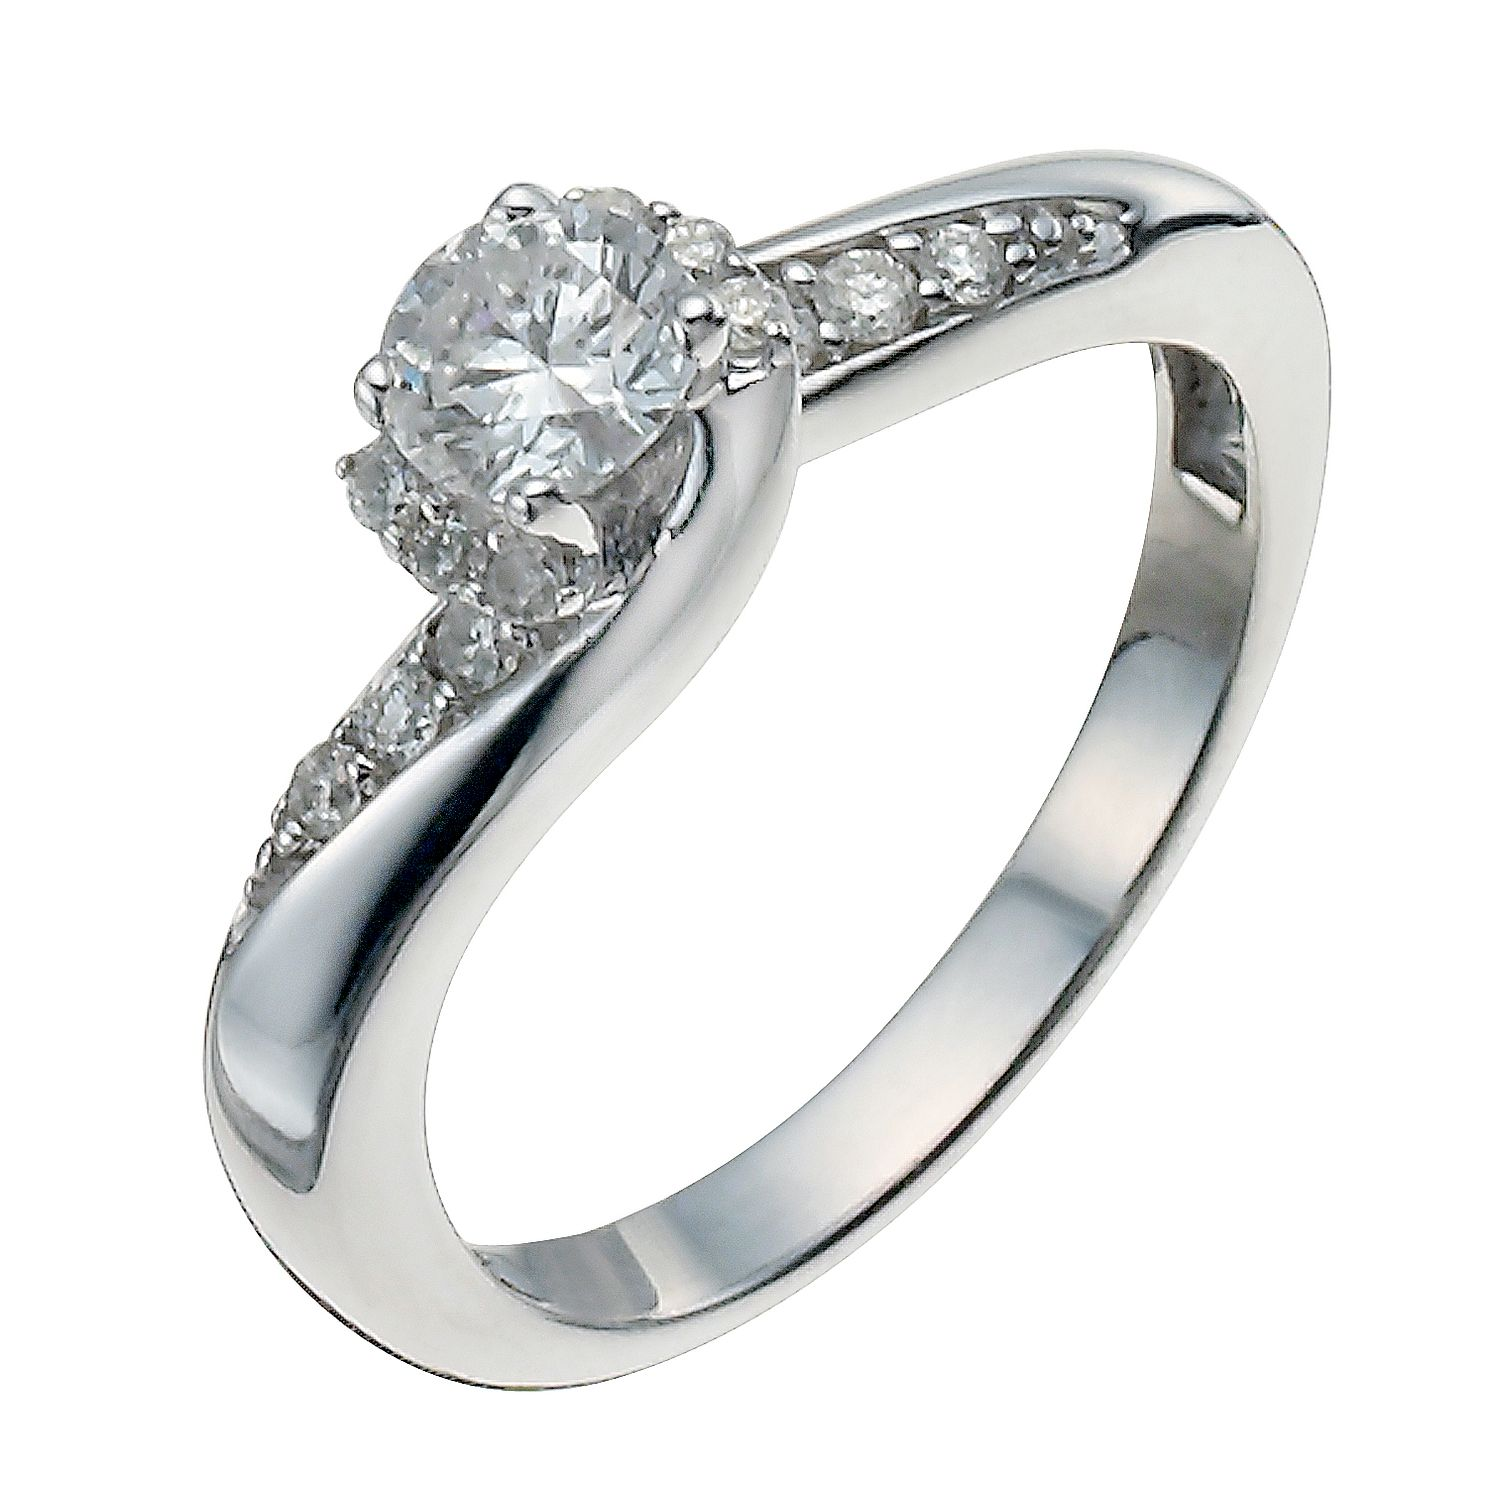 solitaire size l carat ring half platinum diamond s is loading image engagement itm